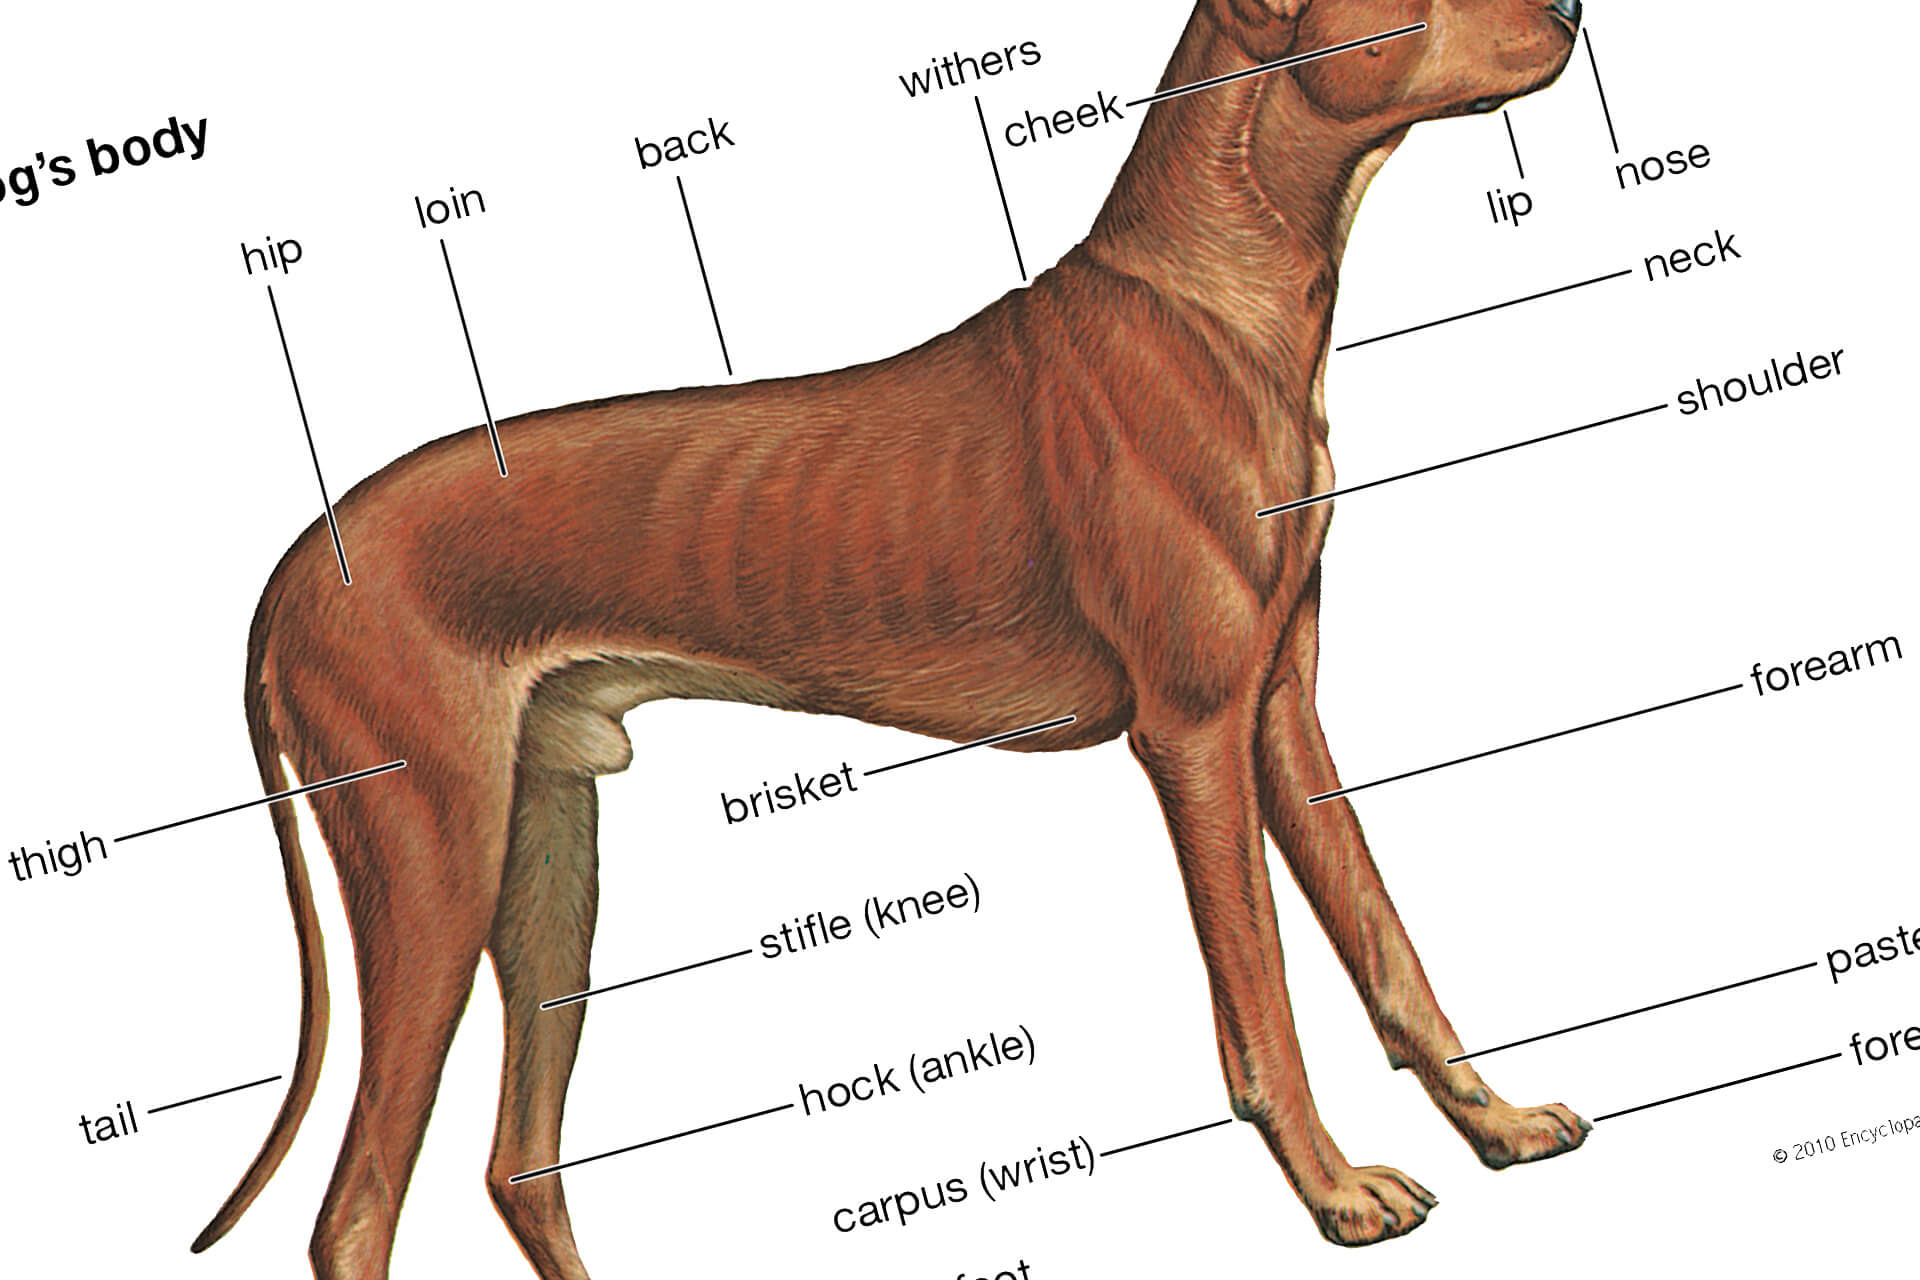 Anatomy Of The Dog — From Muzzle To Tail